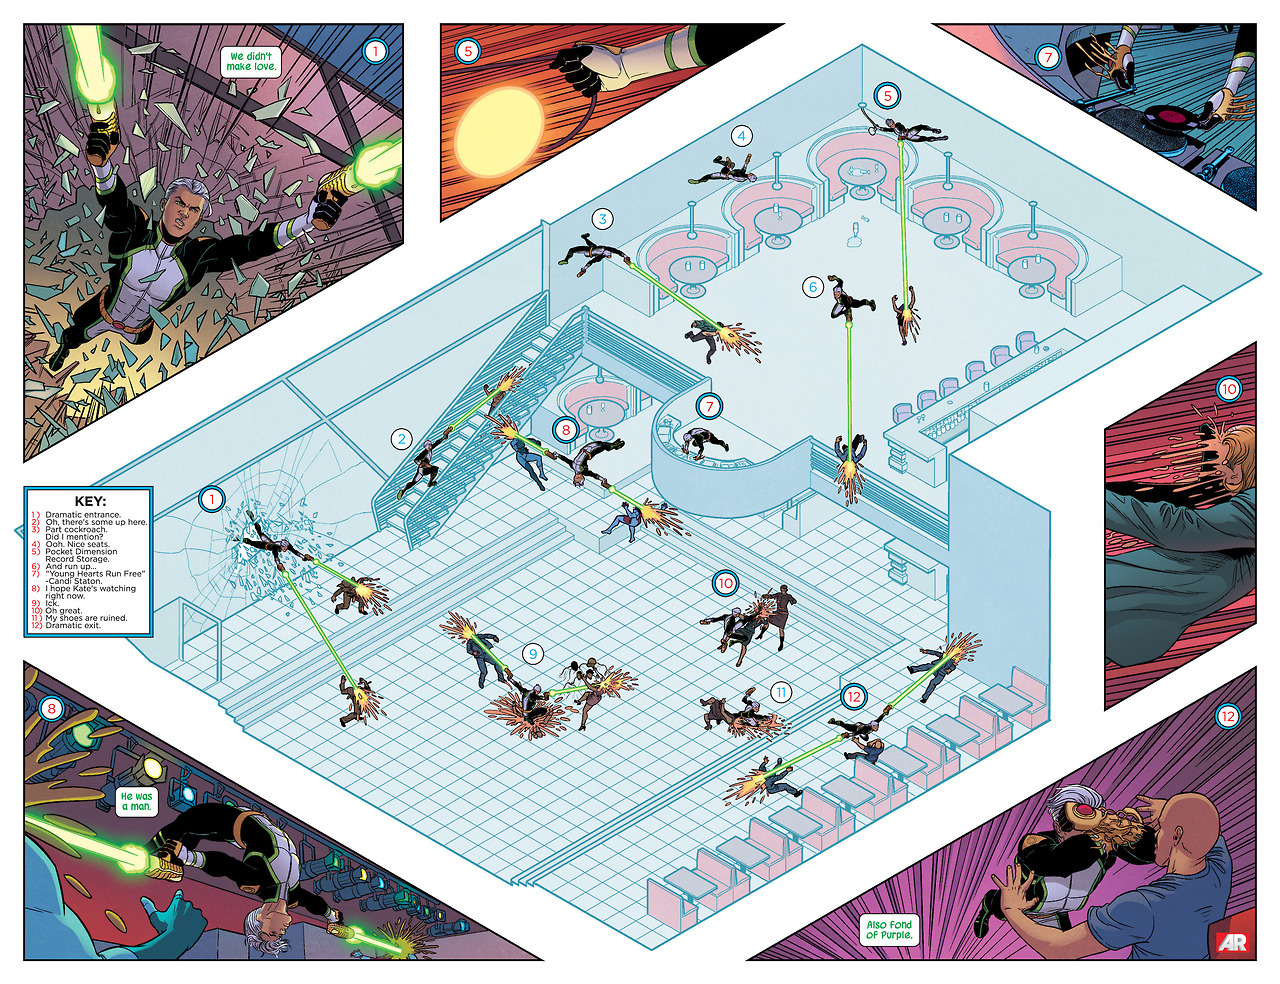 This is the double-page spread from Young Avengers #4, drawn by Jamie McKelvie, who talks about it over at his Tumblr. Fantastic stuff.